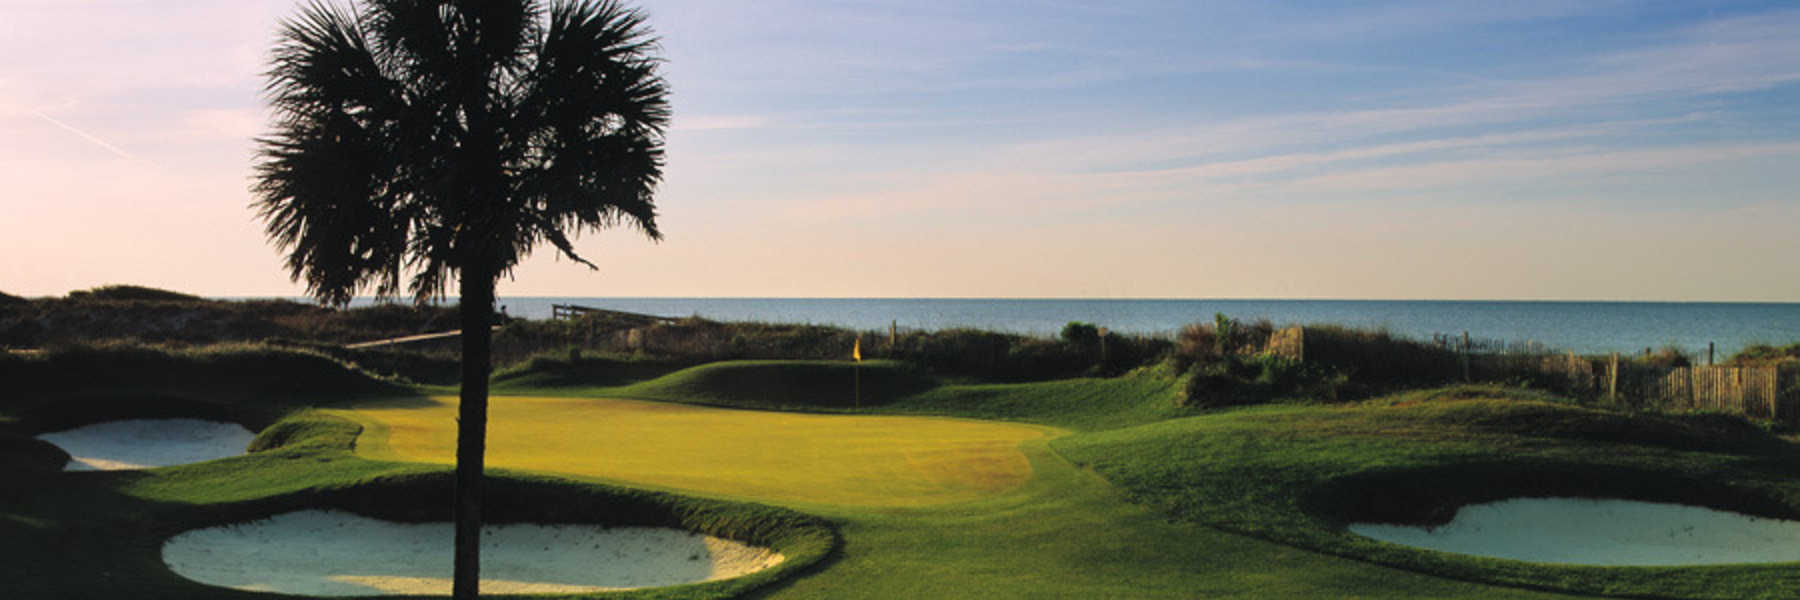 Golf Vacation Package - Kiawah Island Resort - Premier Stay and Play starting at $339 per person, per day!